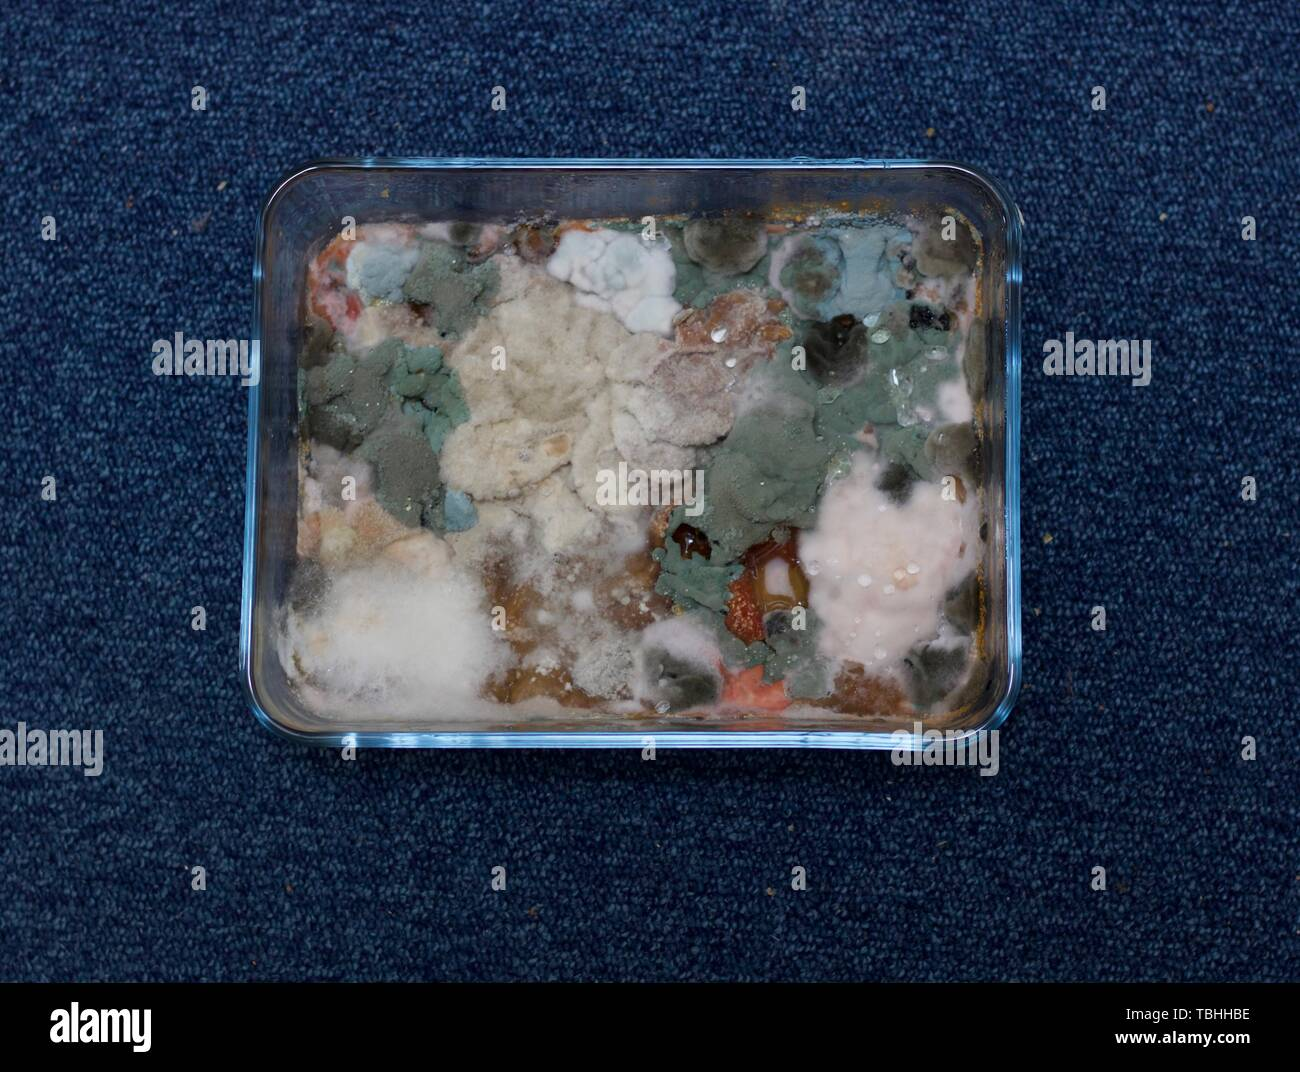 Mould grown on food in rectangular glass dish - image - Stock Image